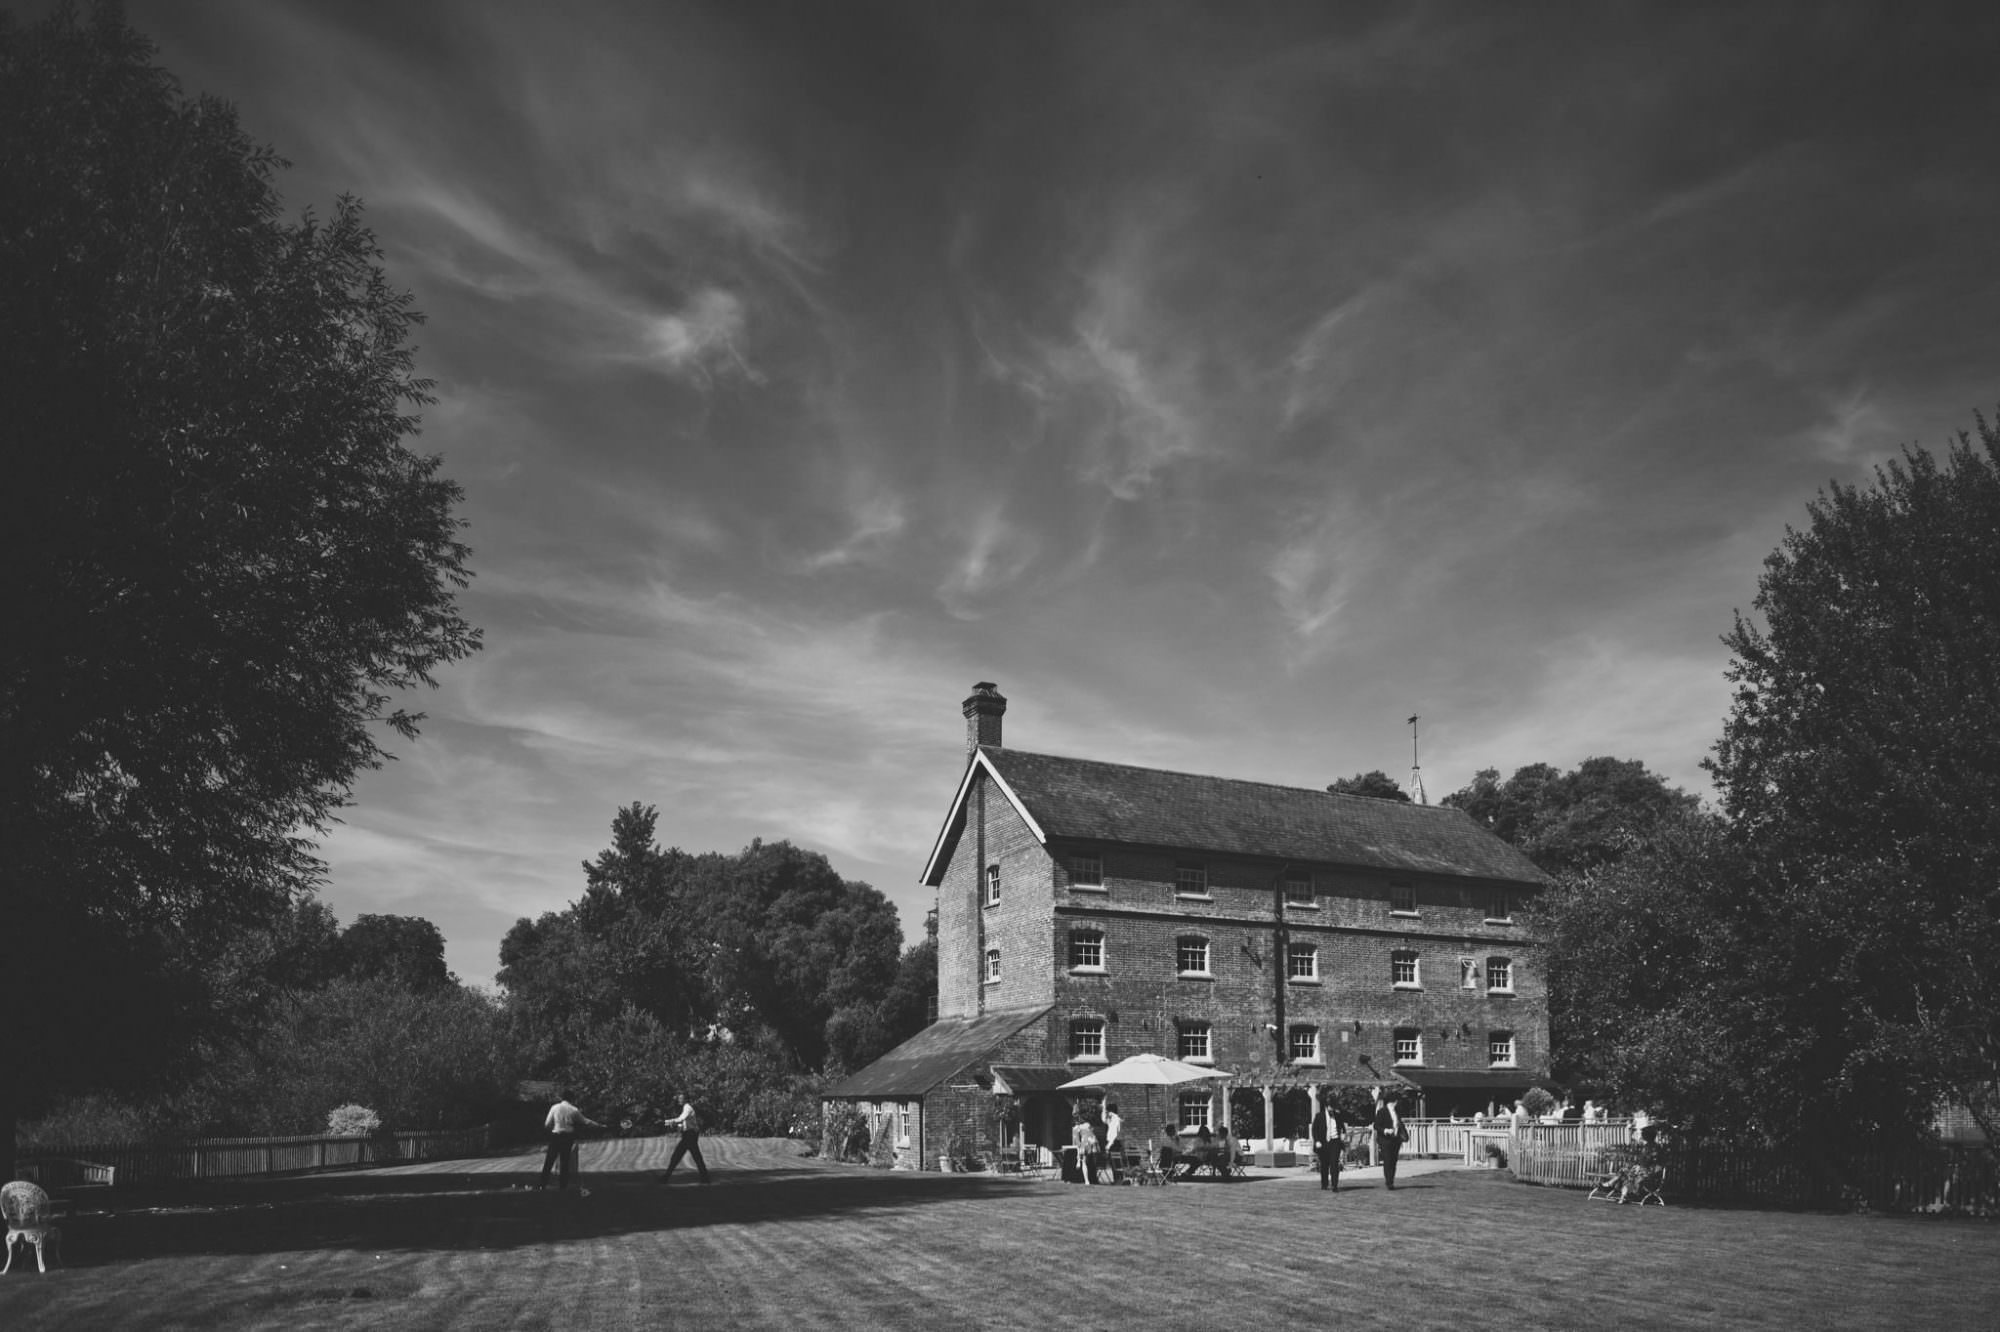 Photograph of Sopley Mill wedding venue in Dorset